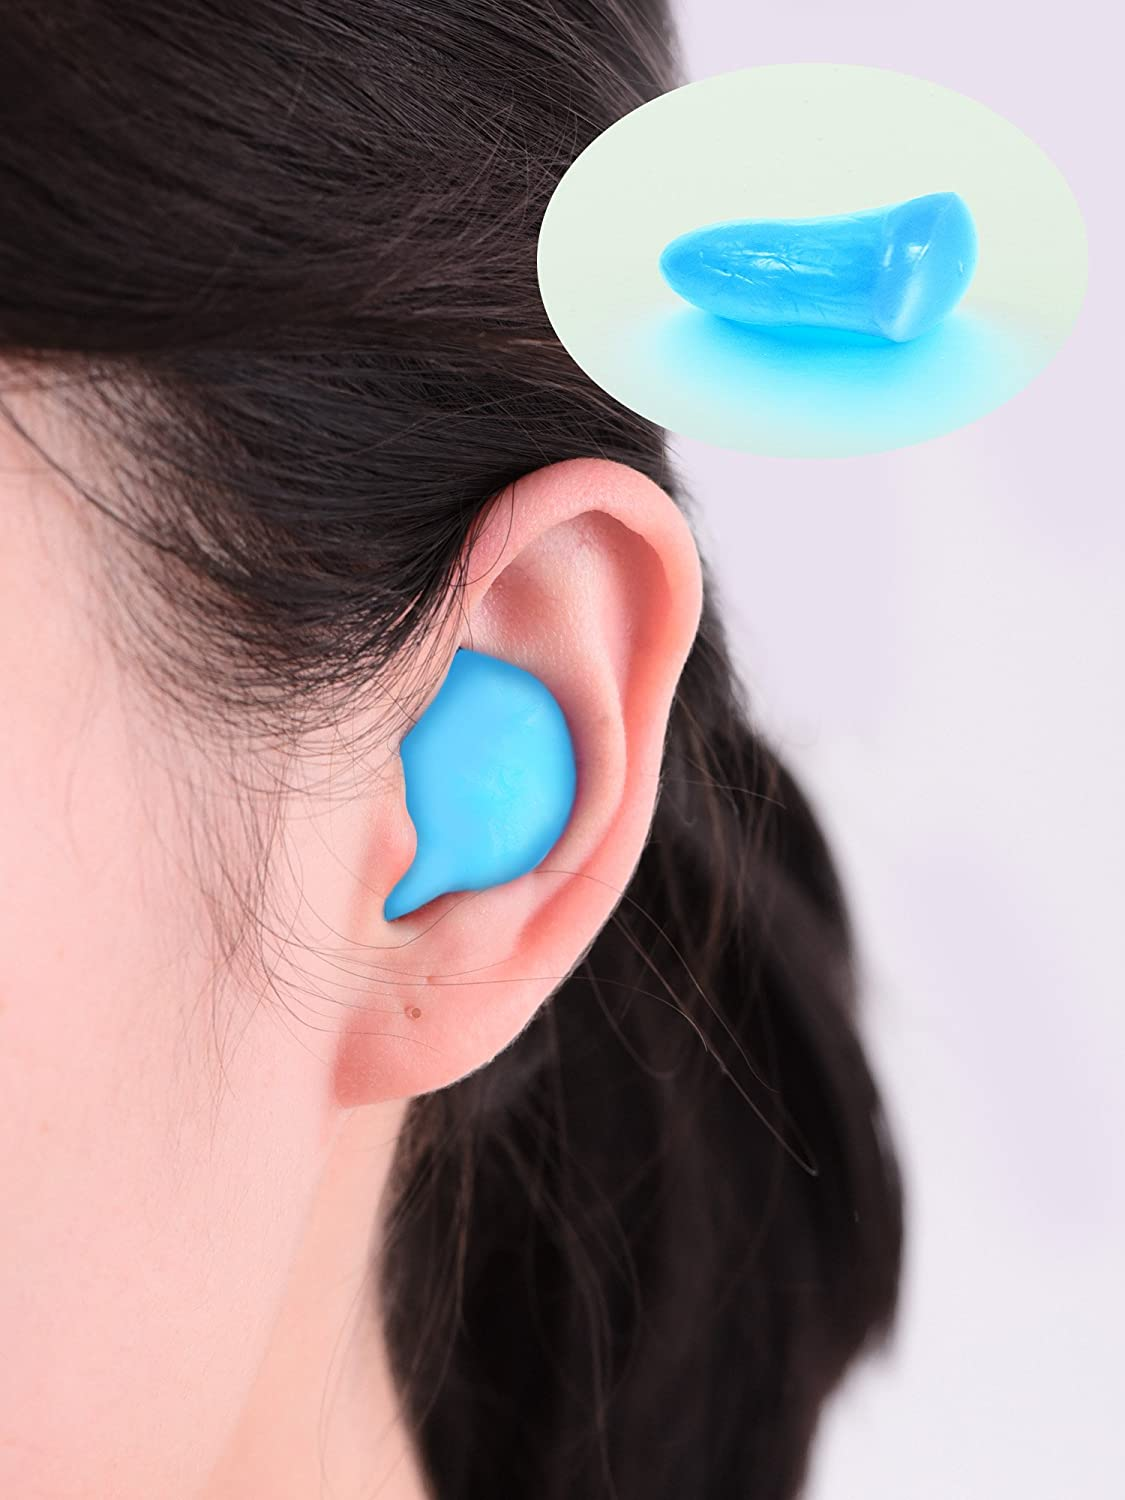 18 Pairs Silicone Putty Ear Plugs Soft Protective Earplugs for Sleeping Swimming Orange